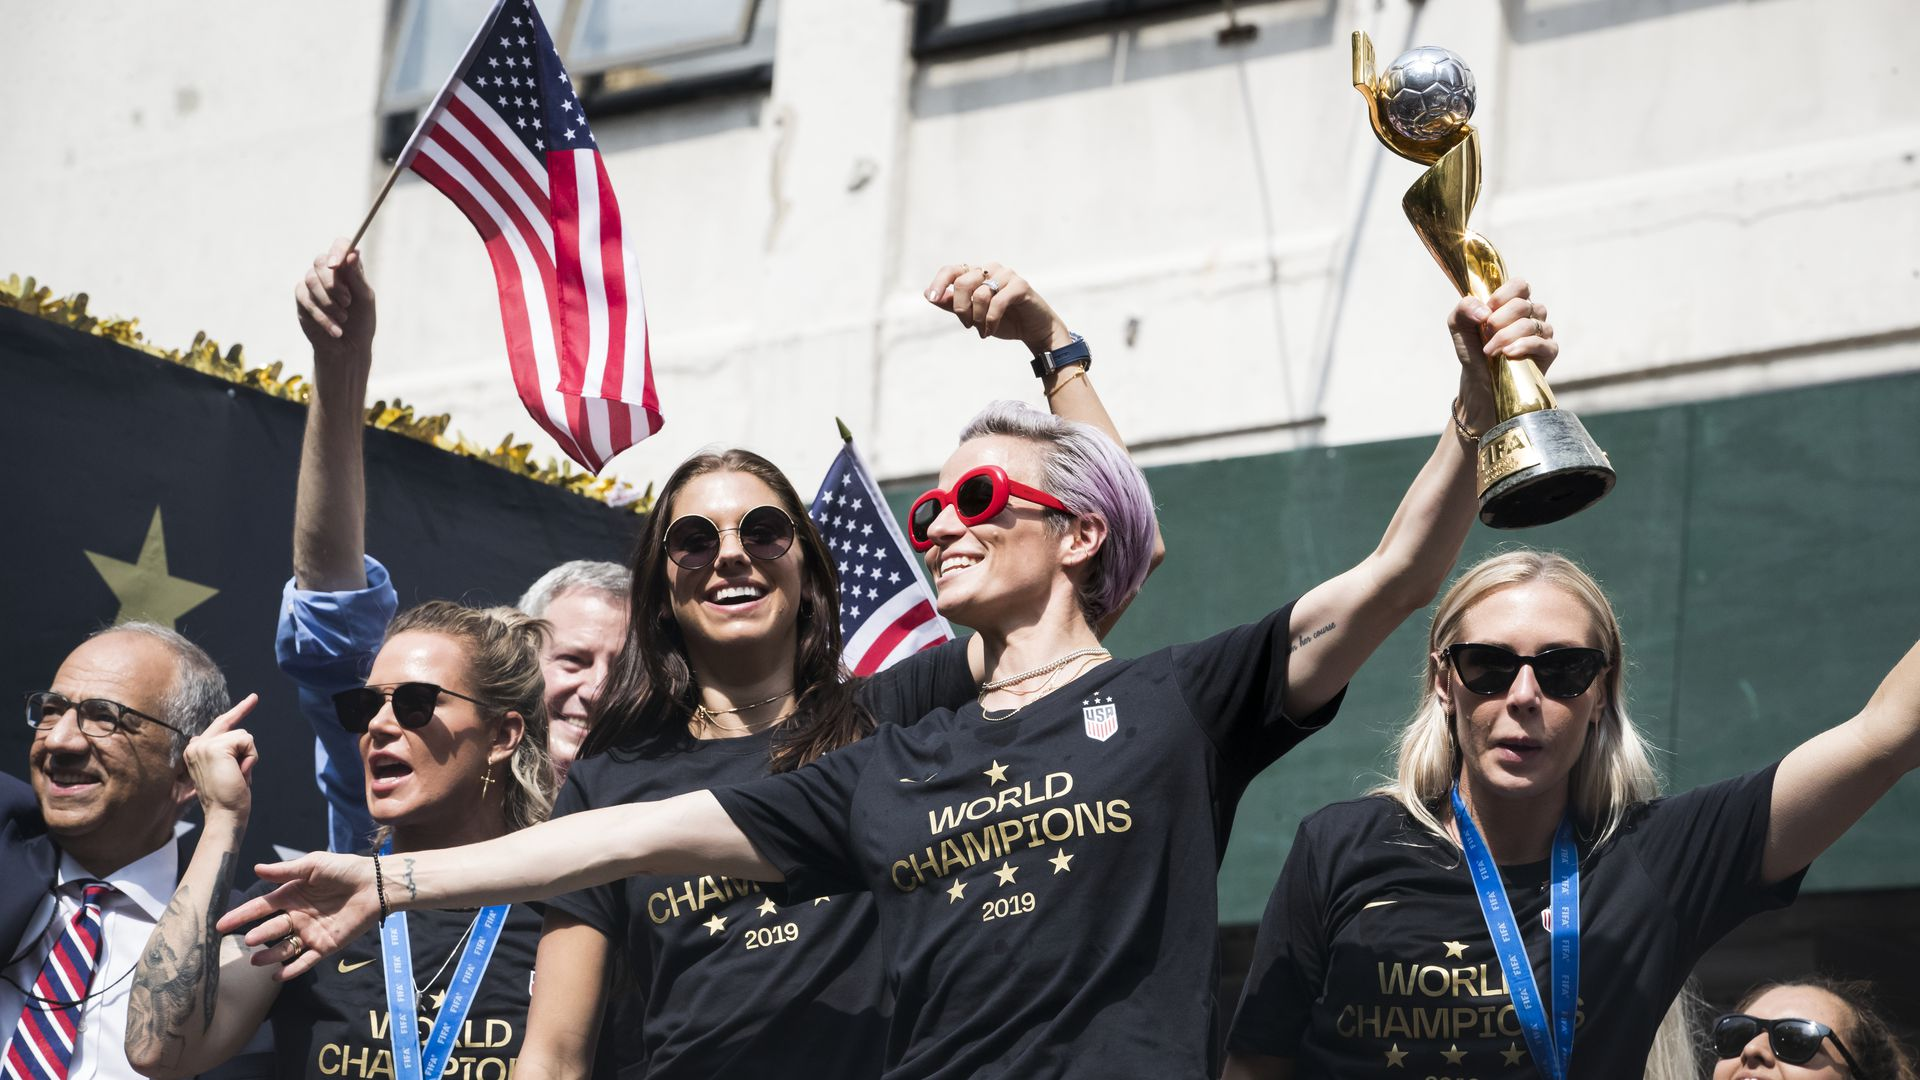 Megan Rapinoe #15 of United States holds the 2019 FIFA World Cup Champion Trophy